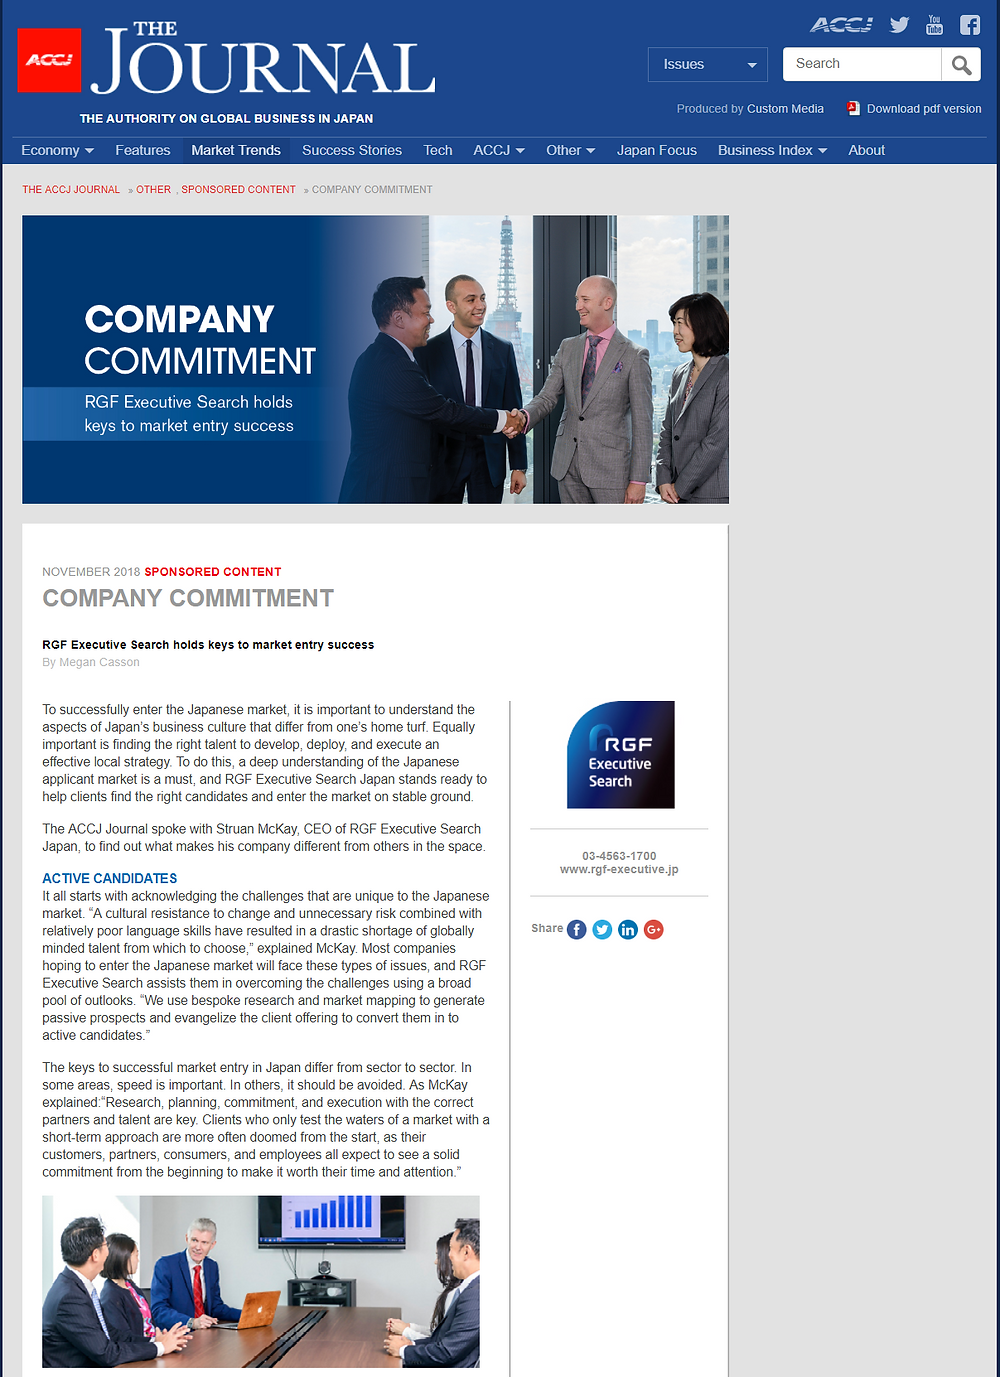 ACCJ The Journal - COMPANY COMMITMENT- RGF Executive Search holds keys to market entry success